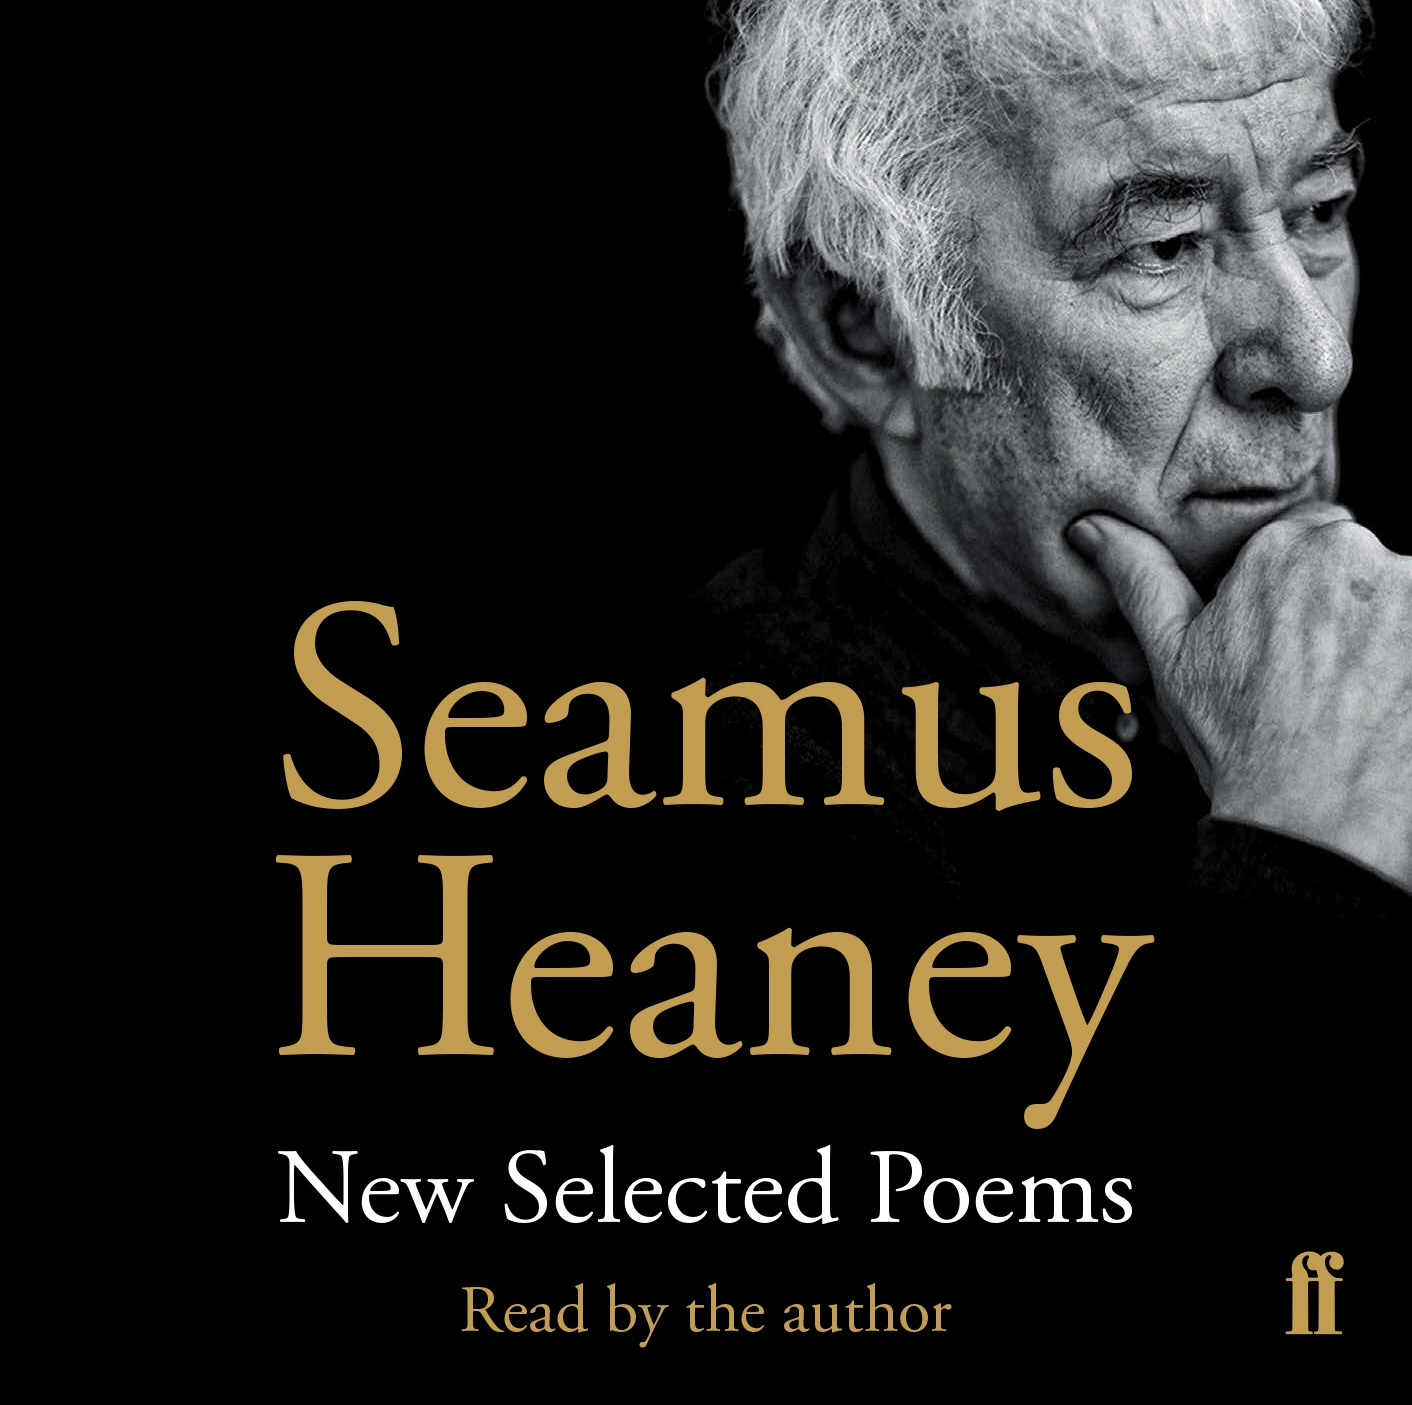 essay on seamus heaney A four-year-old boy stands on the sidewalk with his brothers, unaware of the danger that lies just a few feet away in the street he sees his other brothers across.